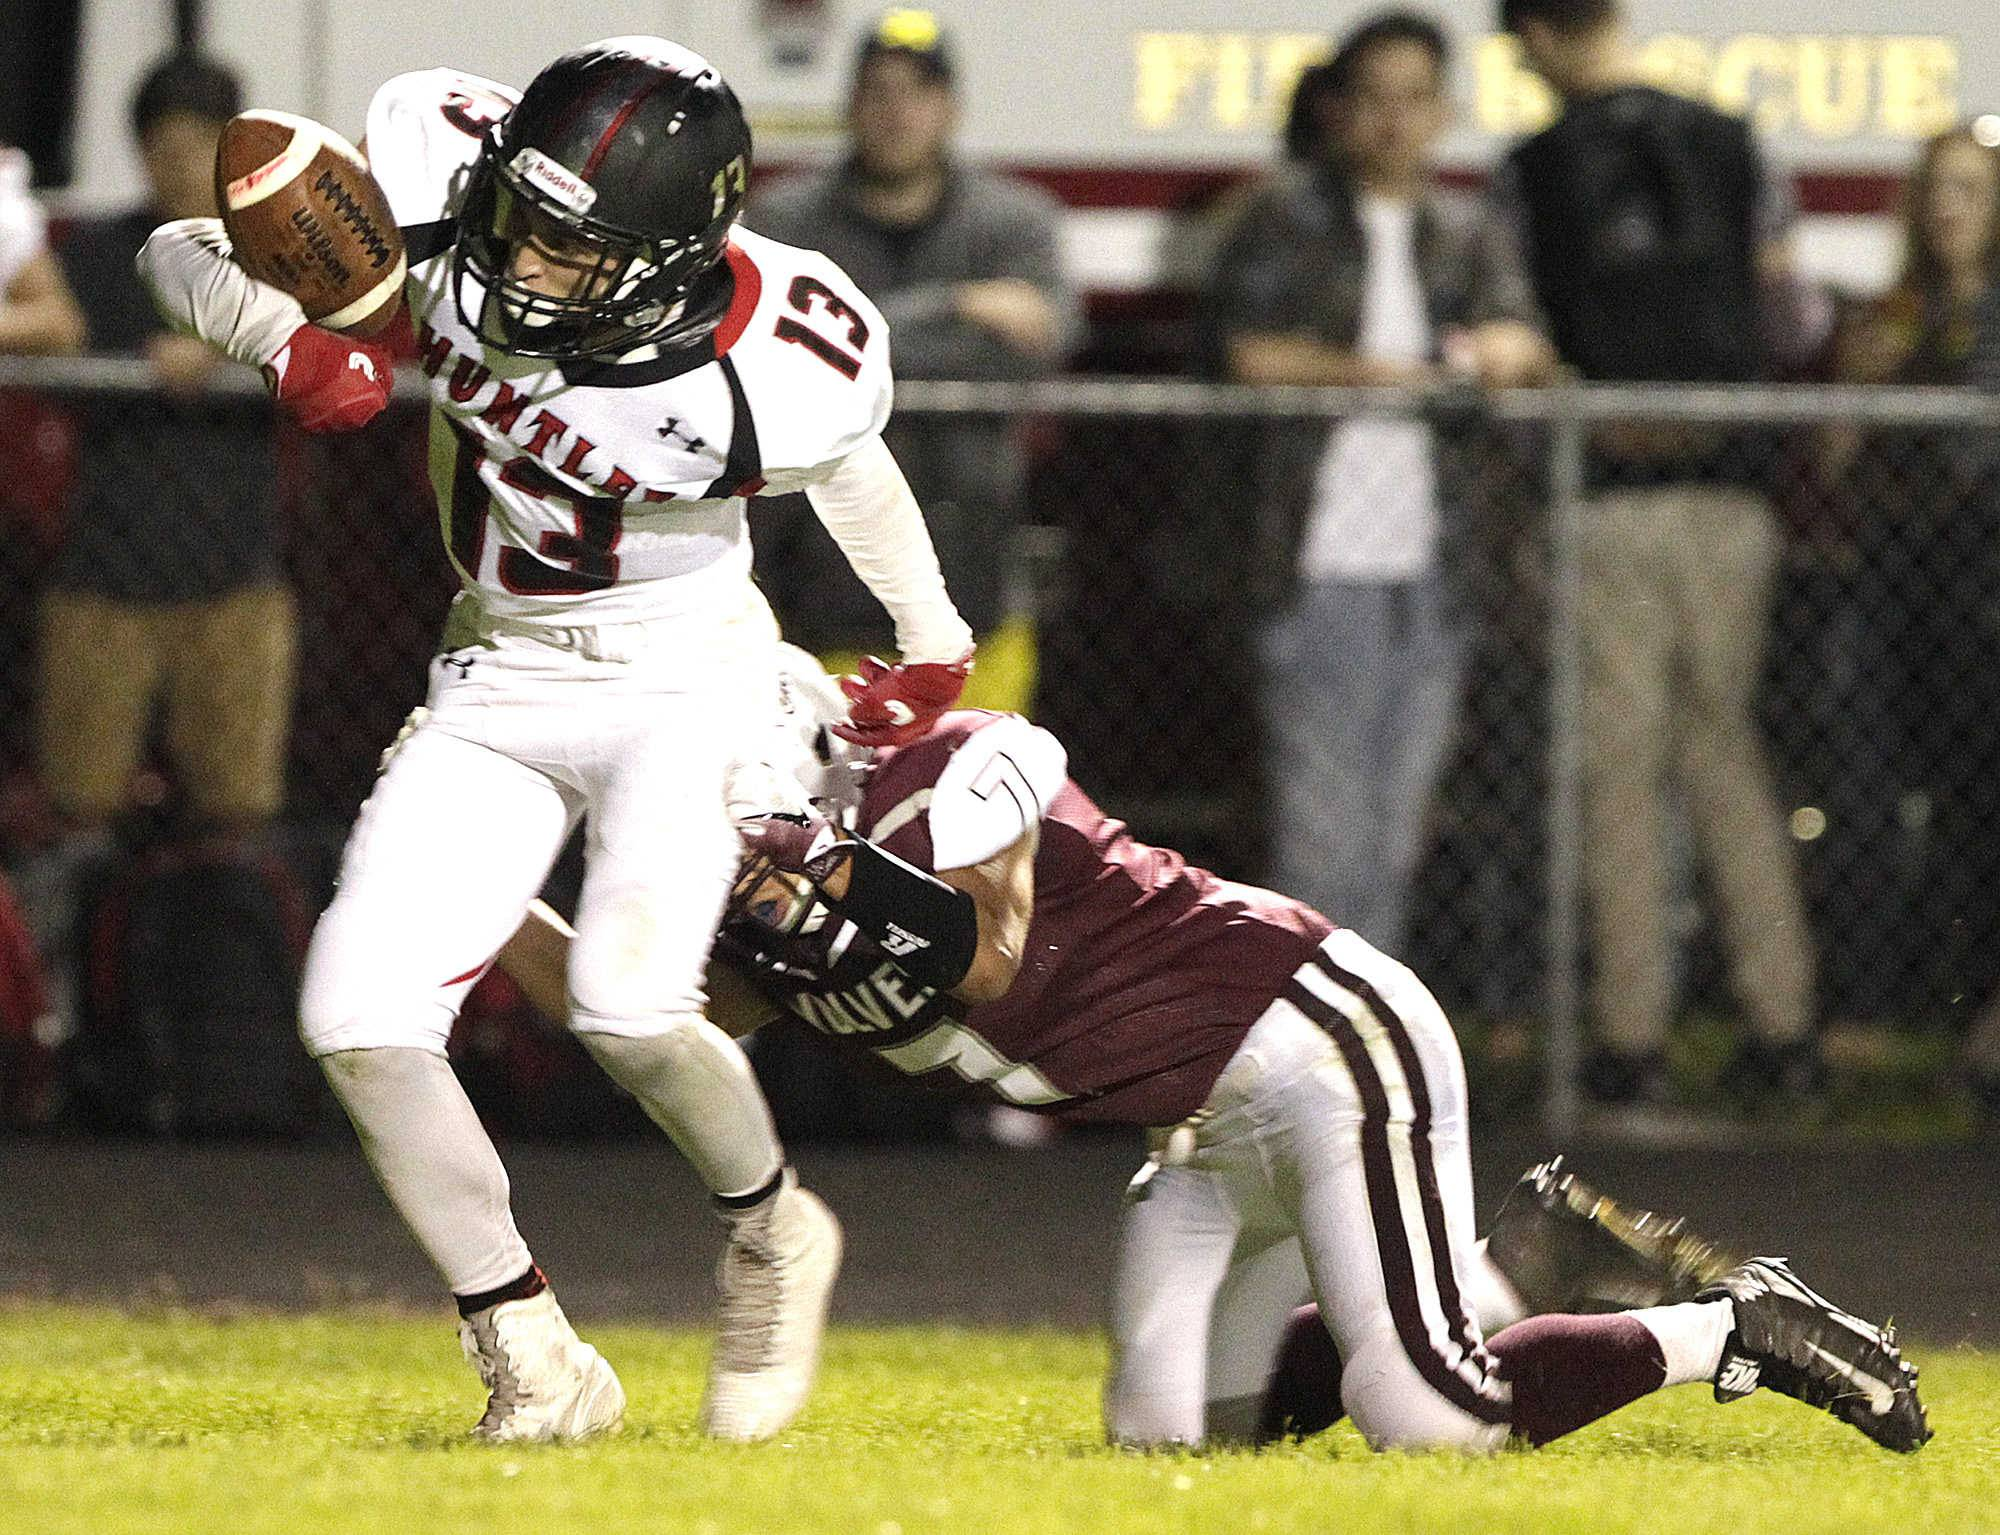 Huntley's Alec Coss cannot hang onto the ball as Prairie Ridge's Daniel Reteria makes the tackle in the first half on Friday.